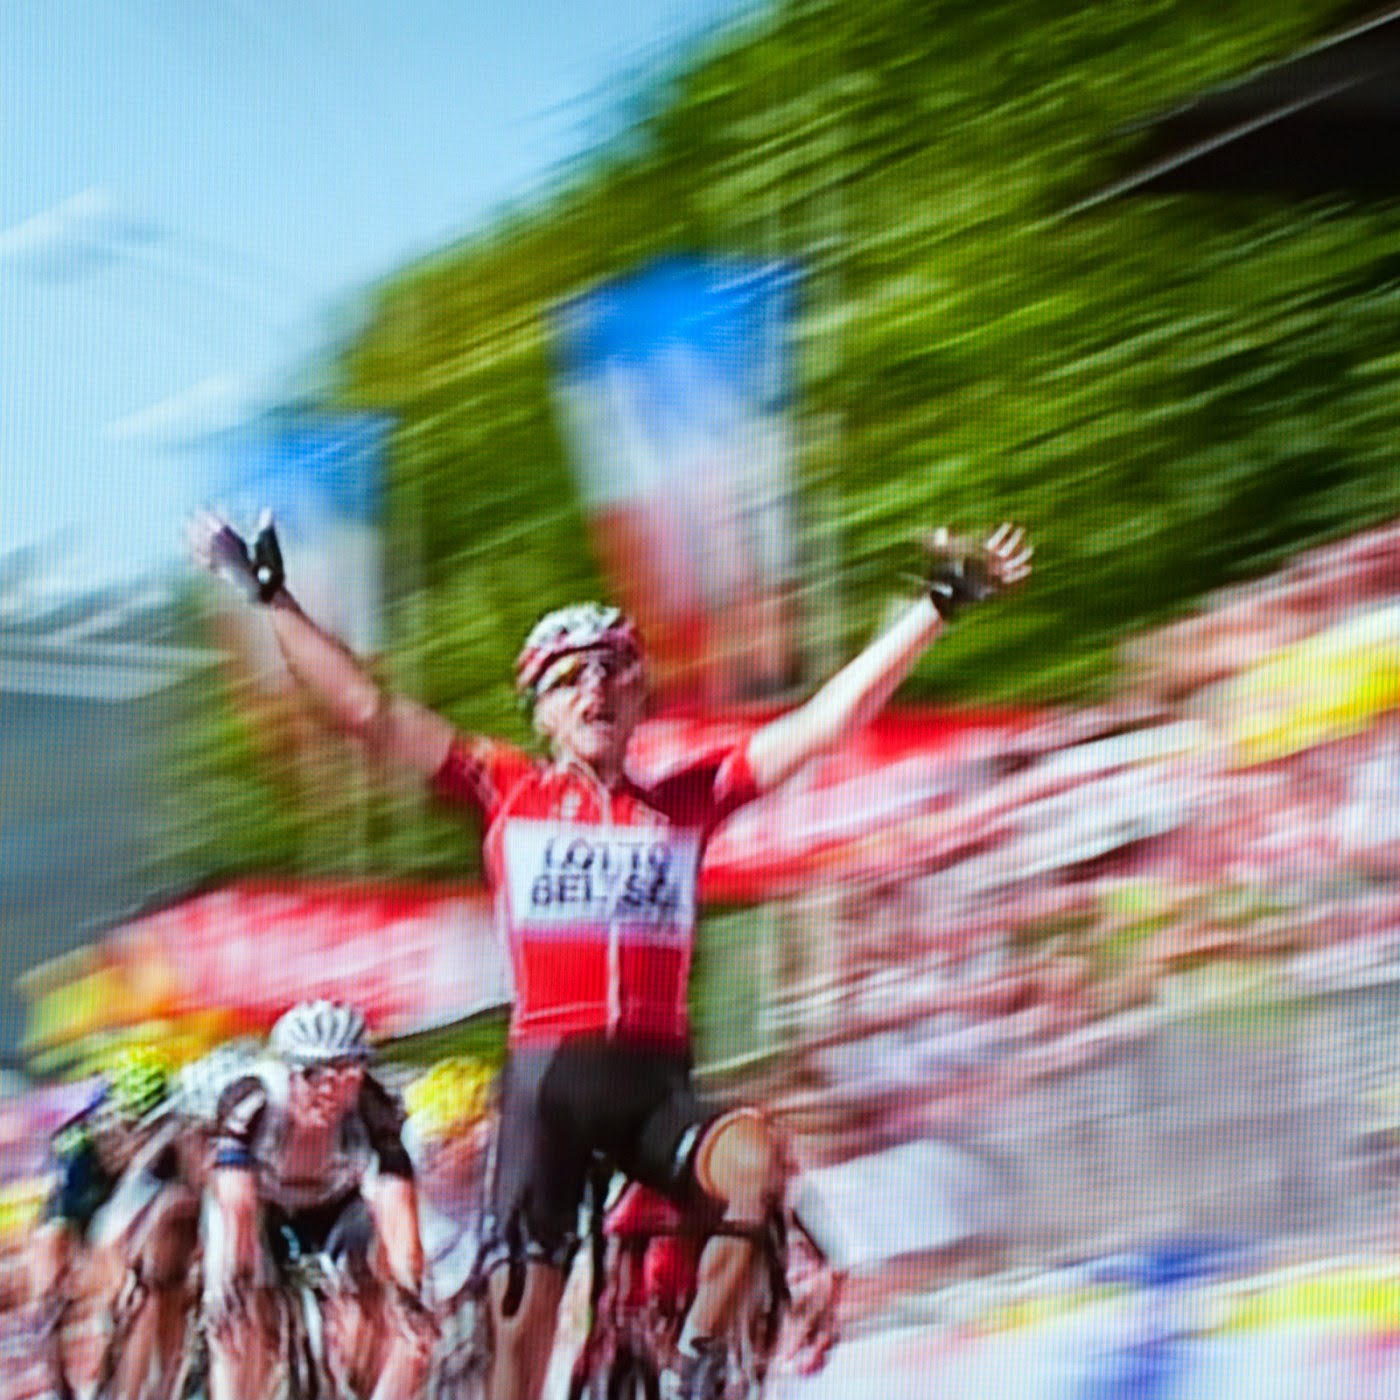 le tour de france, motion blur, blur, abstract, abstraction, tim macauley, photographic art, you won't see this at MoMA, appropriation, found imagery, le tour 2014, tv footage, portrait, timothy Macauley, the light monkey collective, grand cycling tour, sprint finish, team lotto belisol